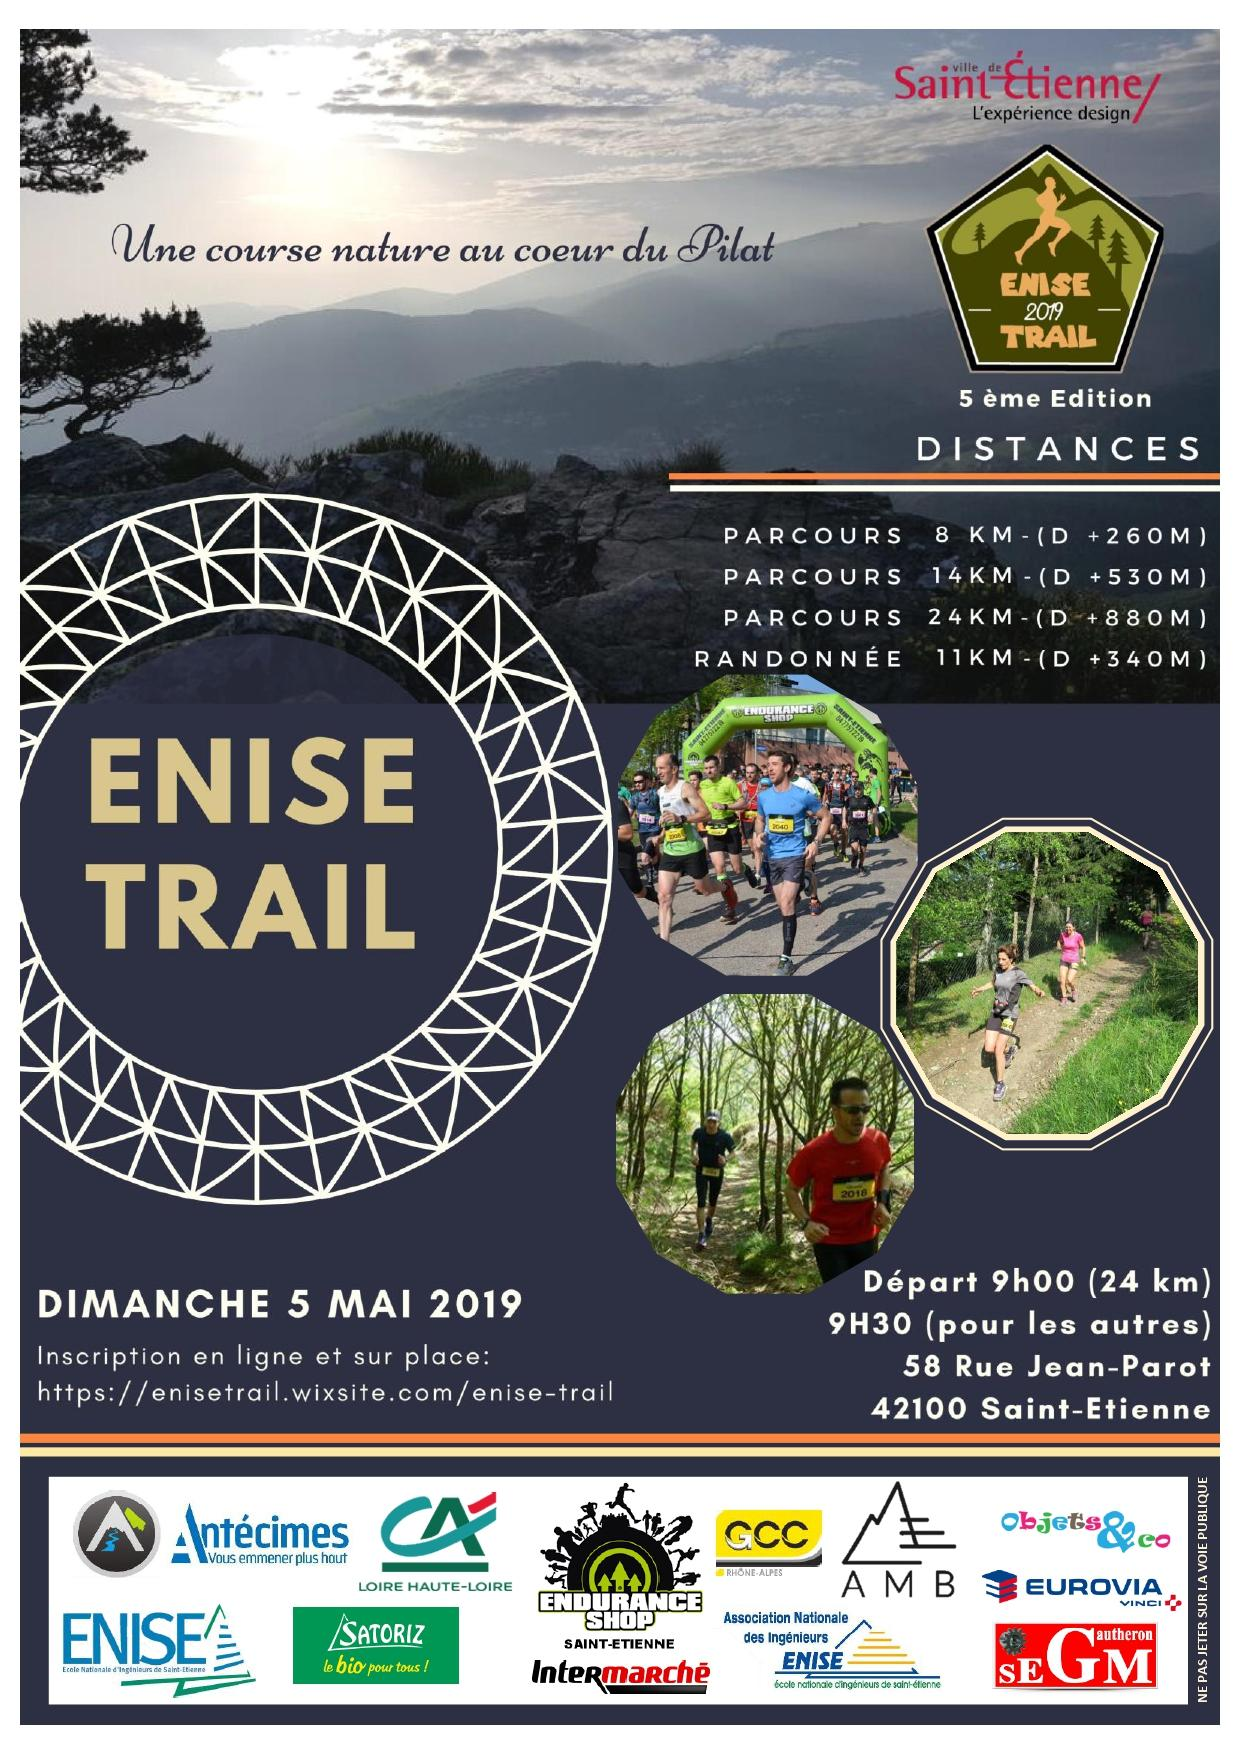 ENISE Trail